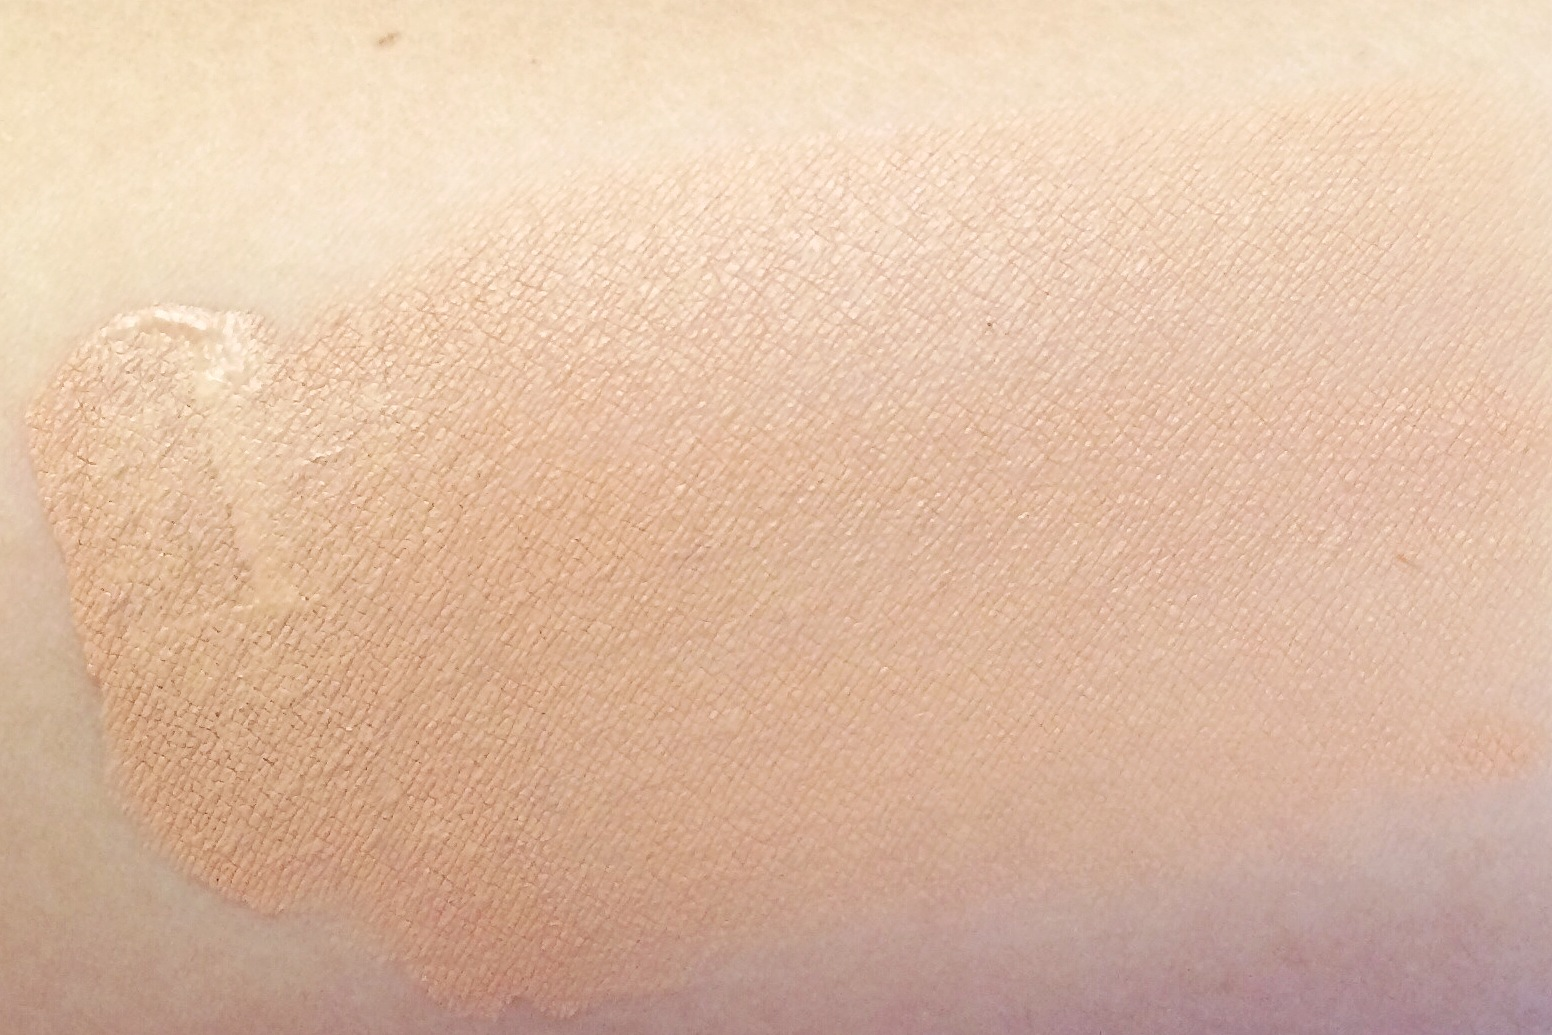 Swatch of the #2 shade. You'll notice it's darker and a bit orange on my skin.